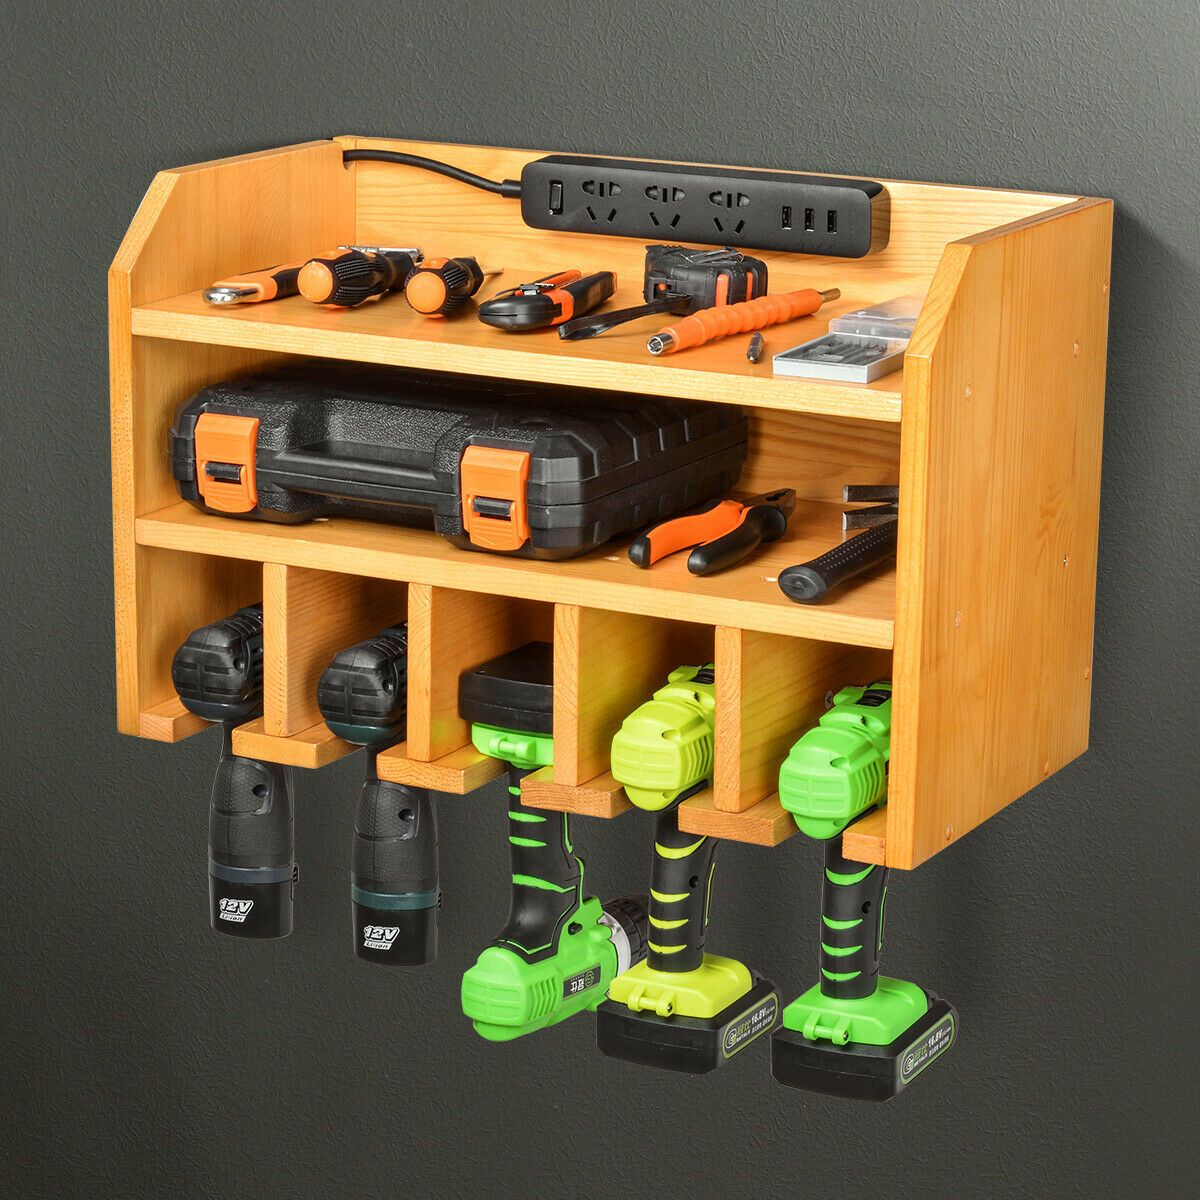 Cordless Drill Organizer Storage Wall Mounted Power Tool Charging Station Ik1010 4894663557706 Ebay In 2020 Tool Storage Diy Tool Wall Storage Power Tools Design